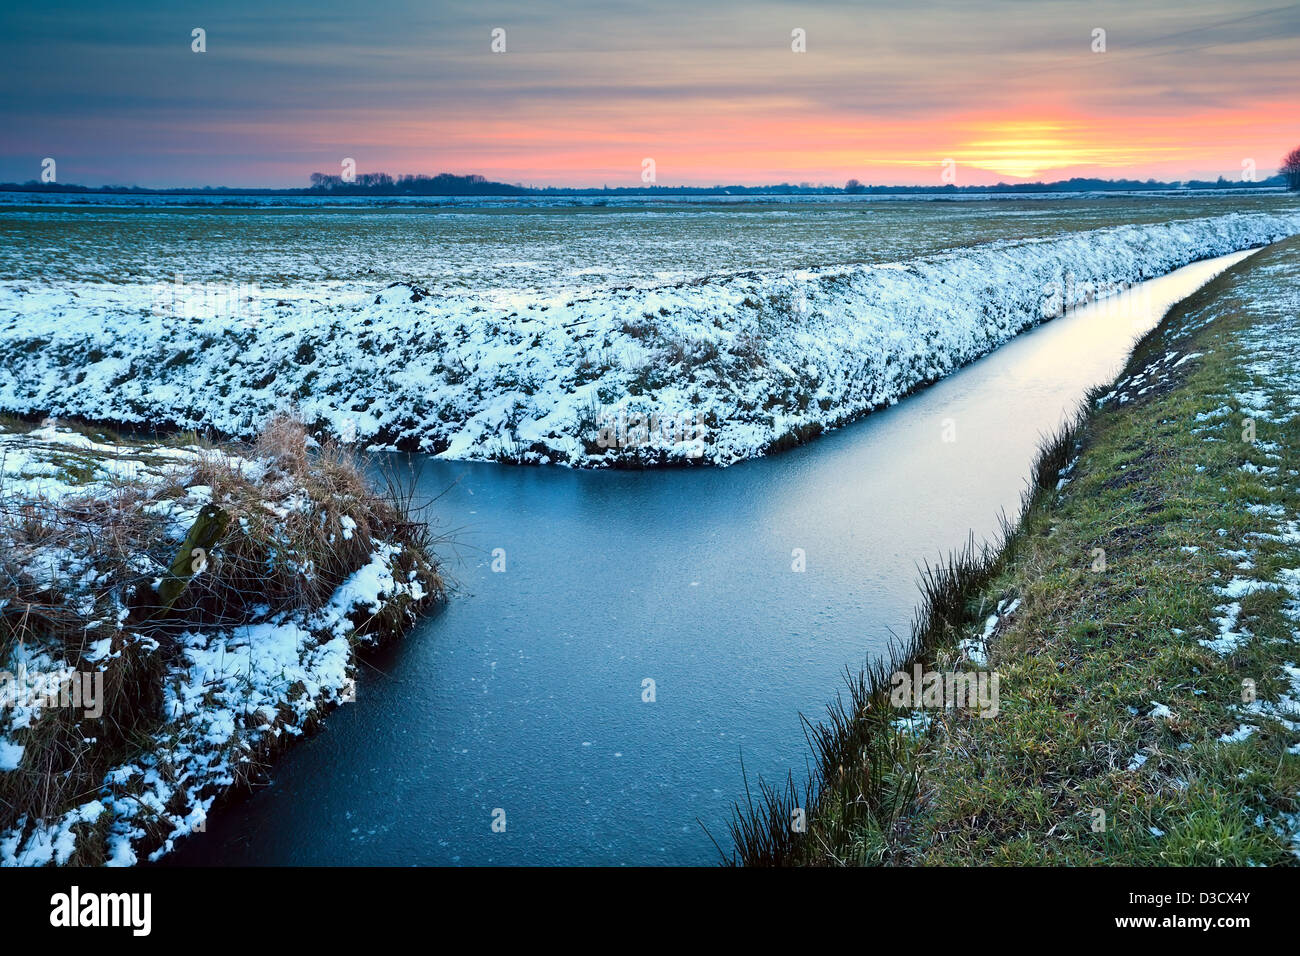 sunset over winter meadows and frozen canals in Netherlands - Stock Image